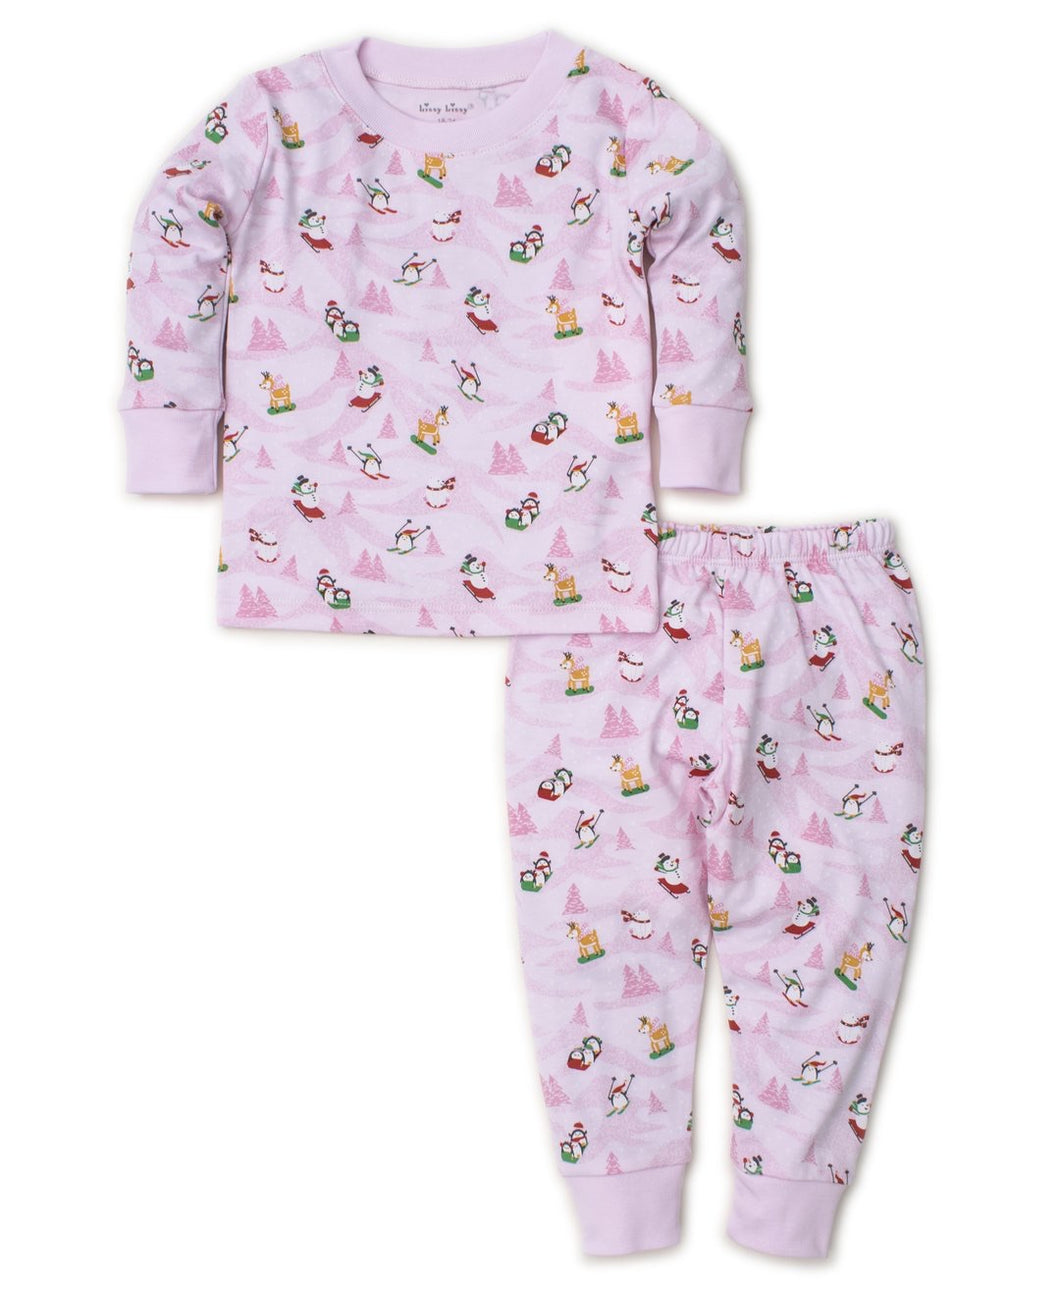 Pink Frosty Friends Pajama Set